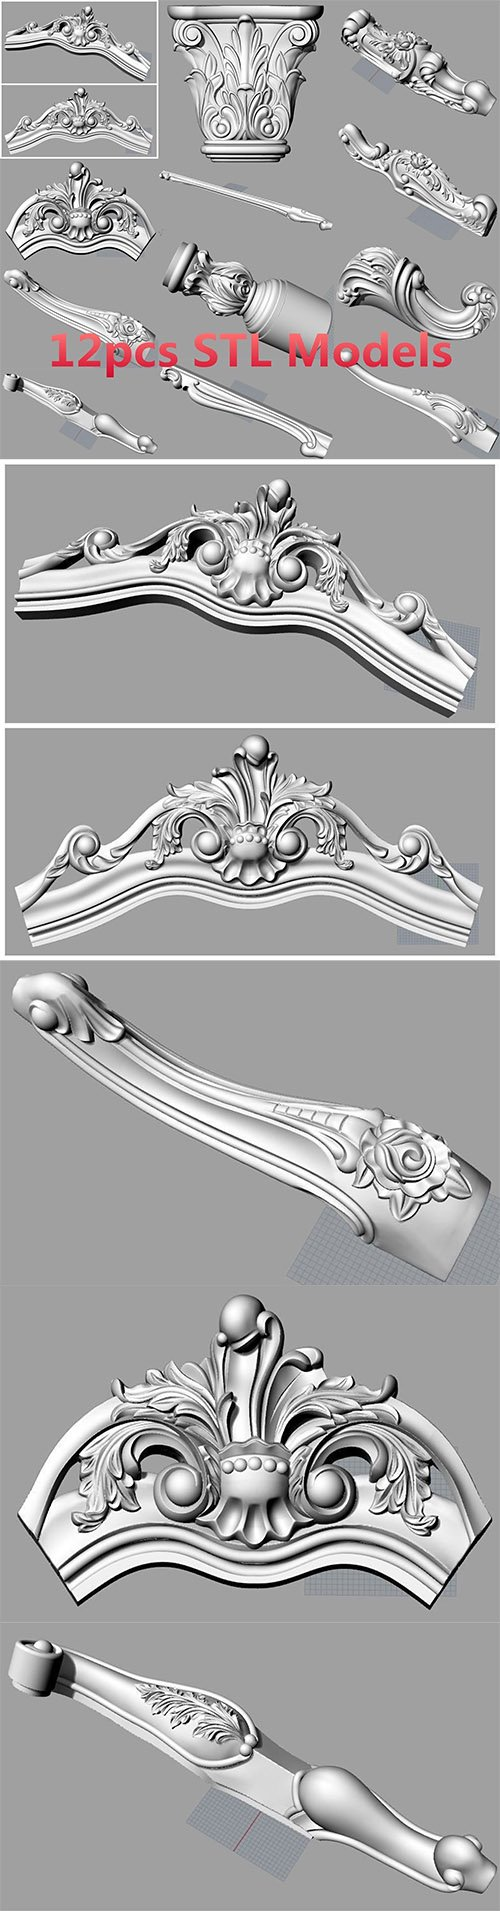 Bed sofa back flower STL relief model for cnc carving S037 3D model